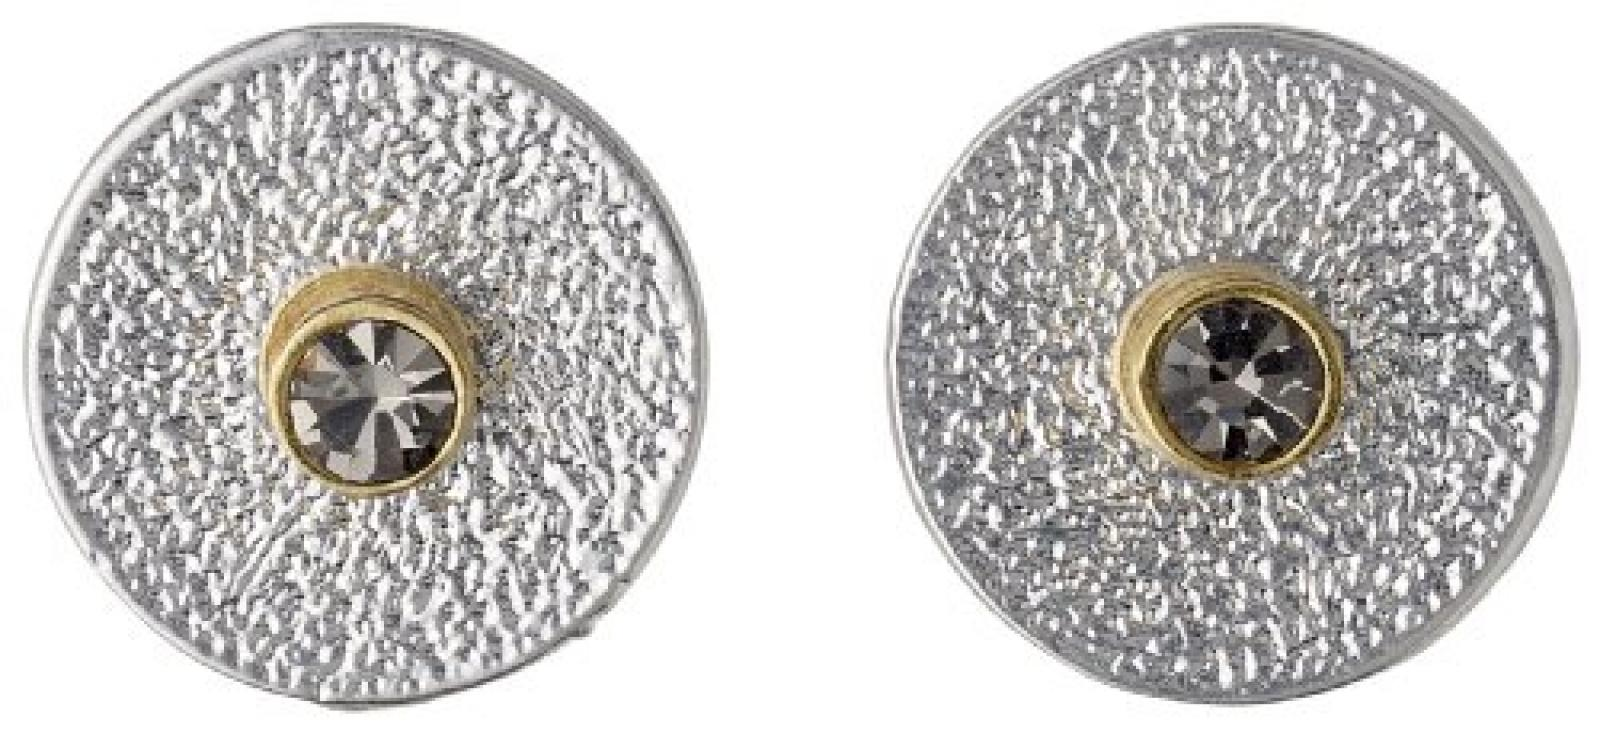 Pilgrim Jewelry Damen-Ohrstecker Messing Pilgrim Damen-Ohrstecker aus der Serie Disk post versilbert,grau 2 in 1 post earring ,1.2 cm in diameter cm 451336103